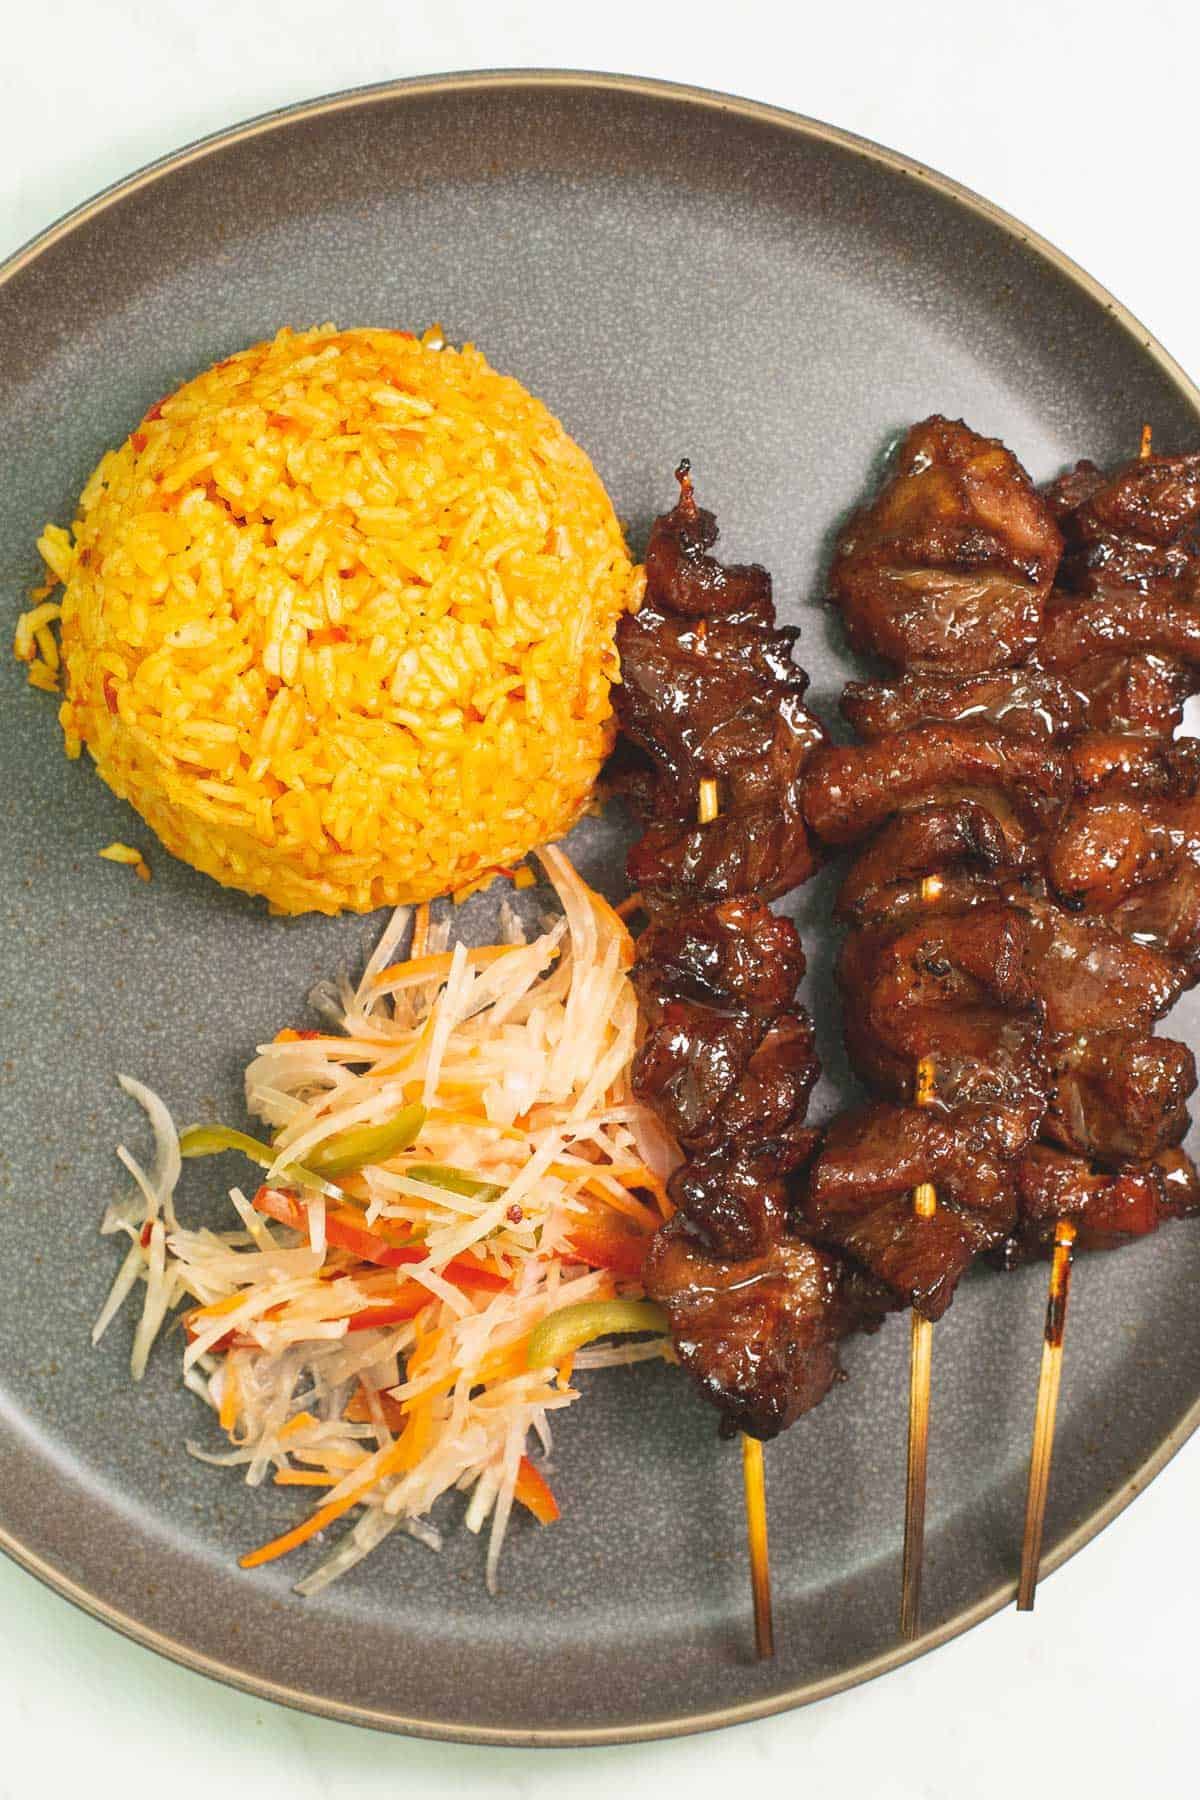 barbecue pork skewers on a plate served with java rice and achara